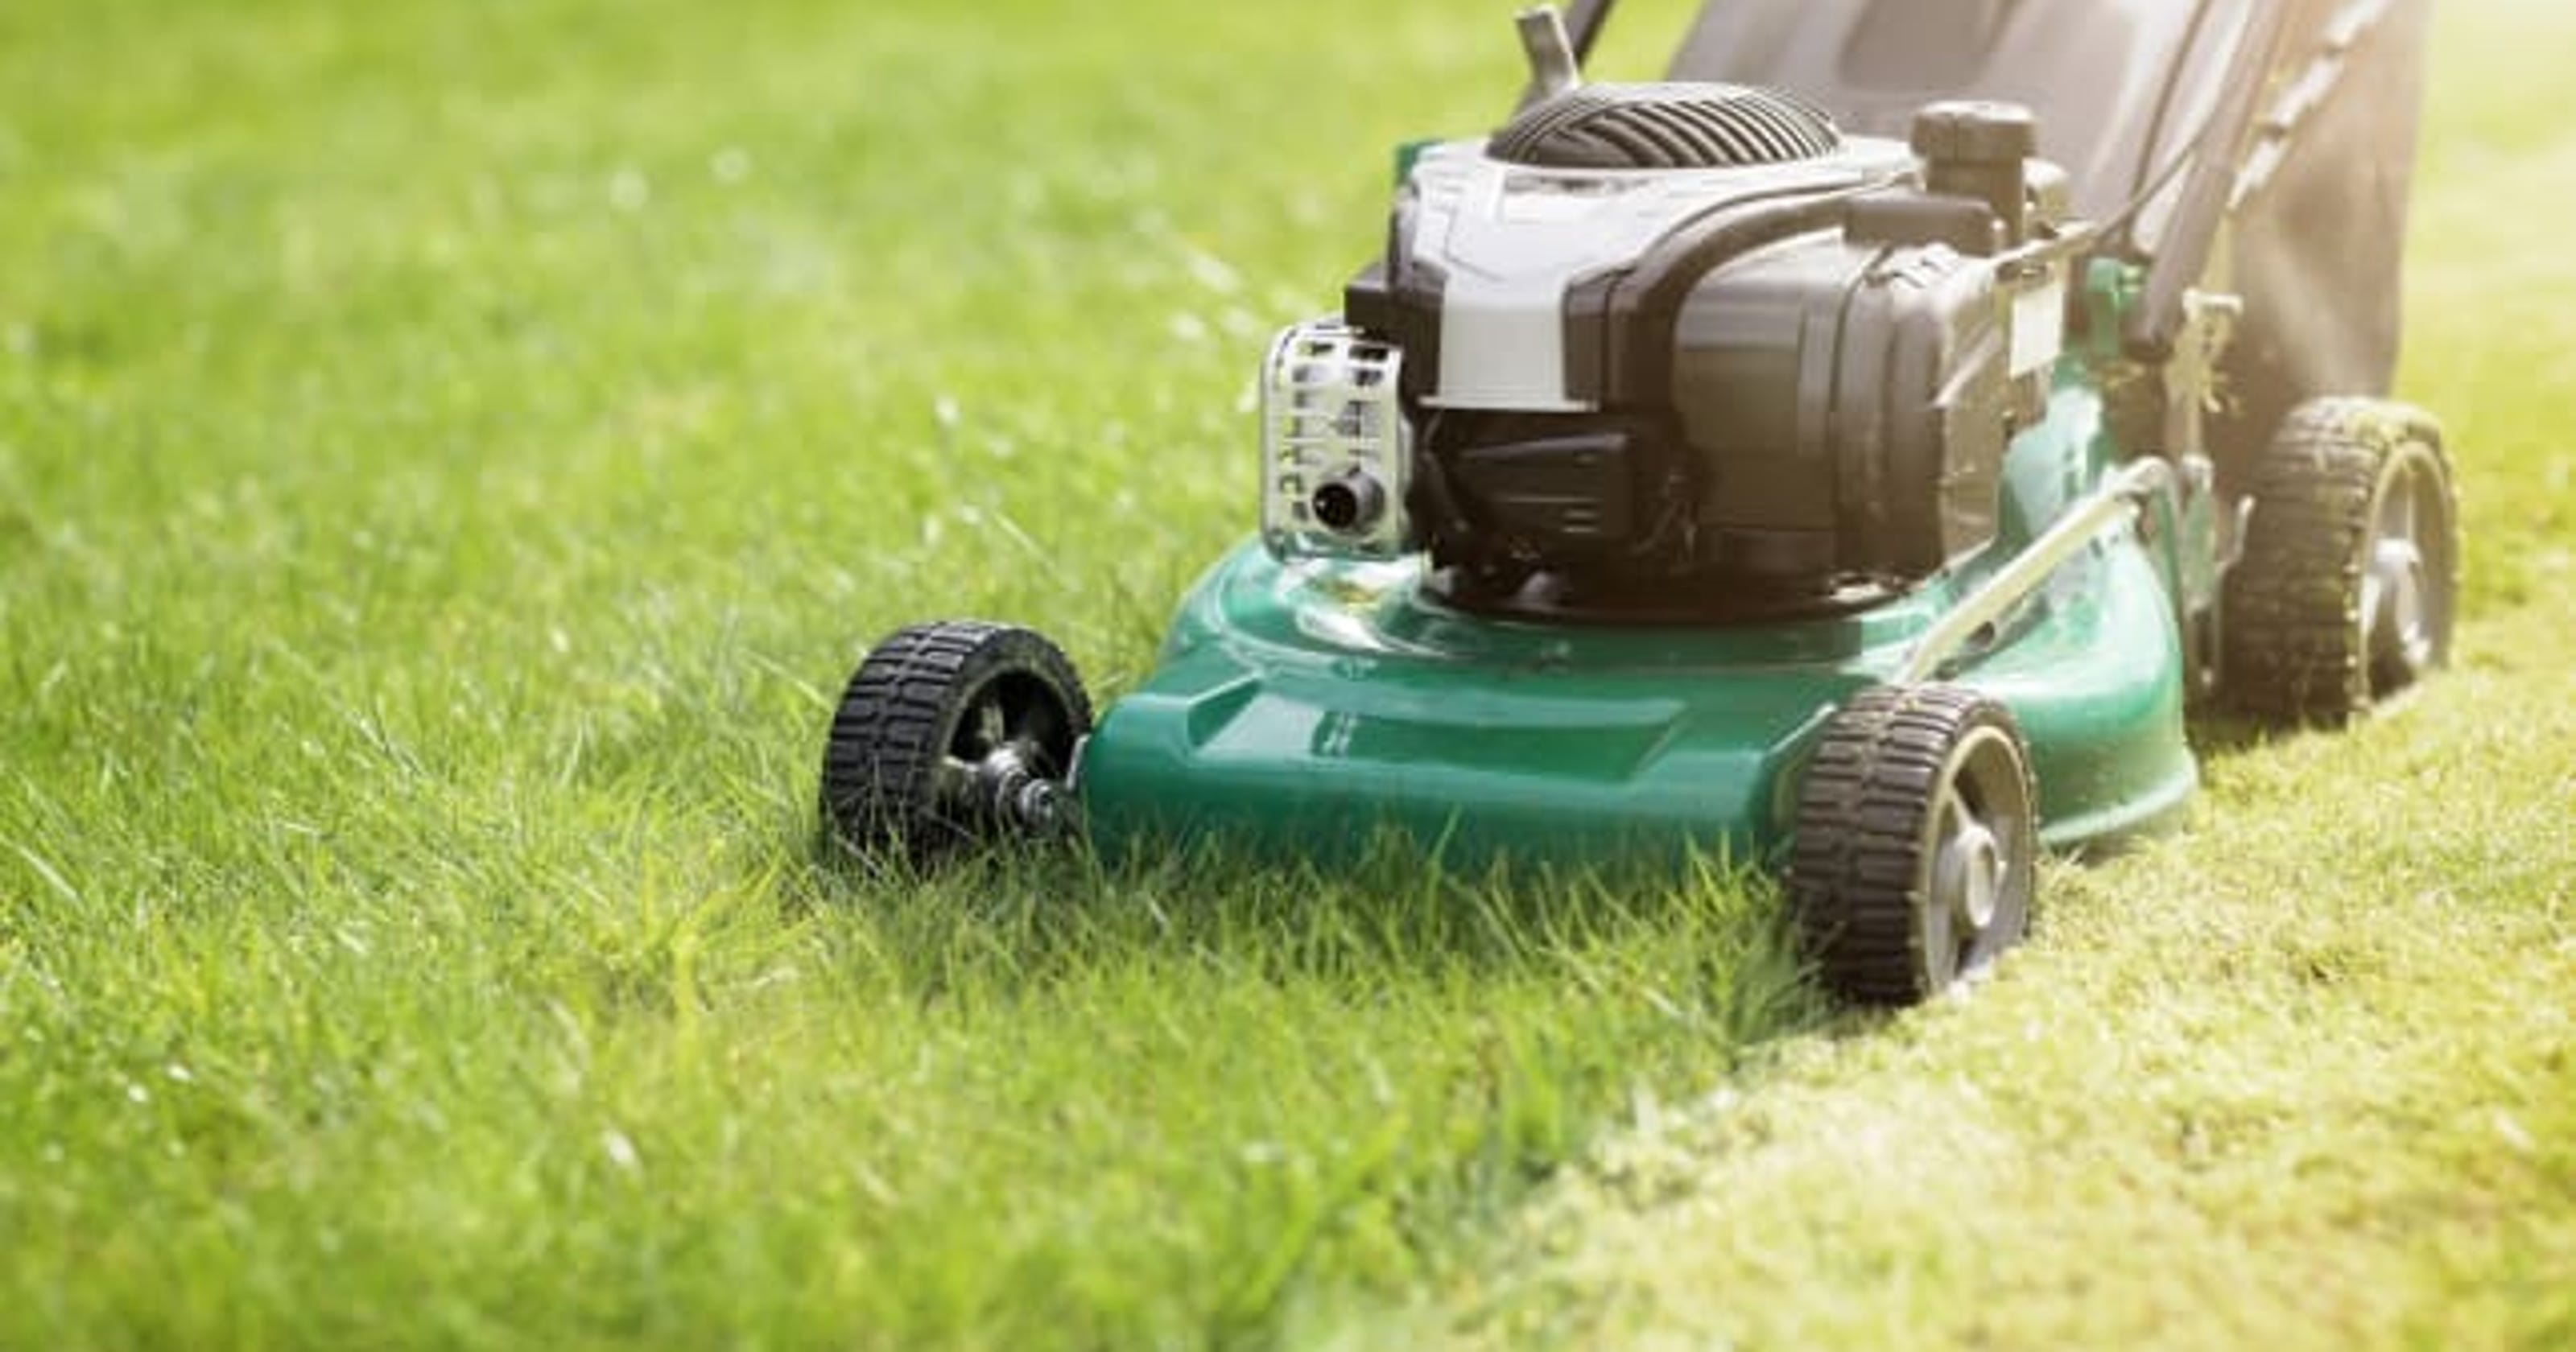 Mowing lawn gives time to reflect on life, politics and more